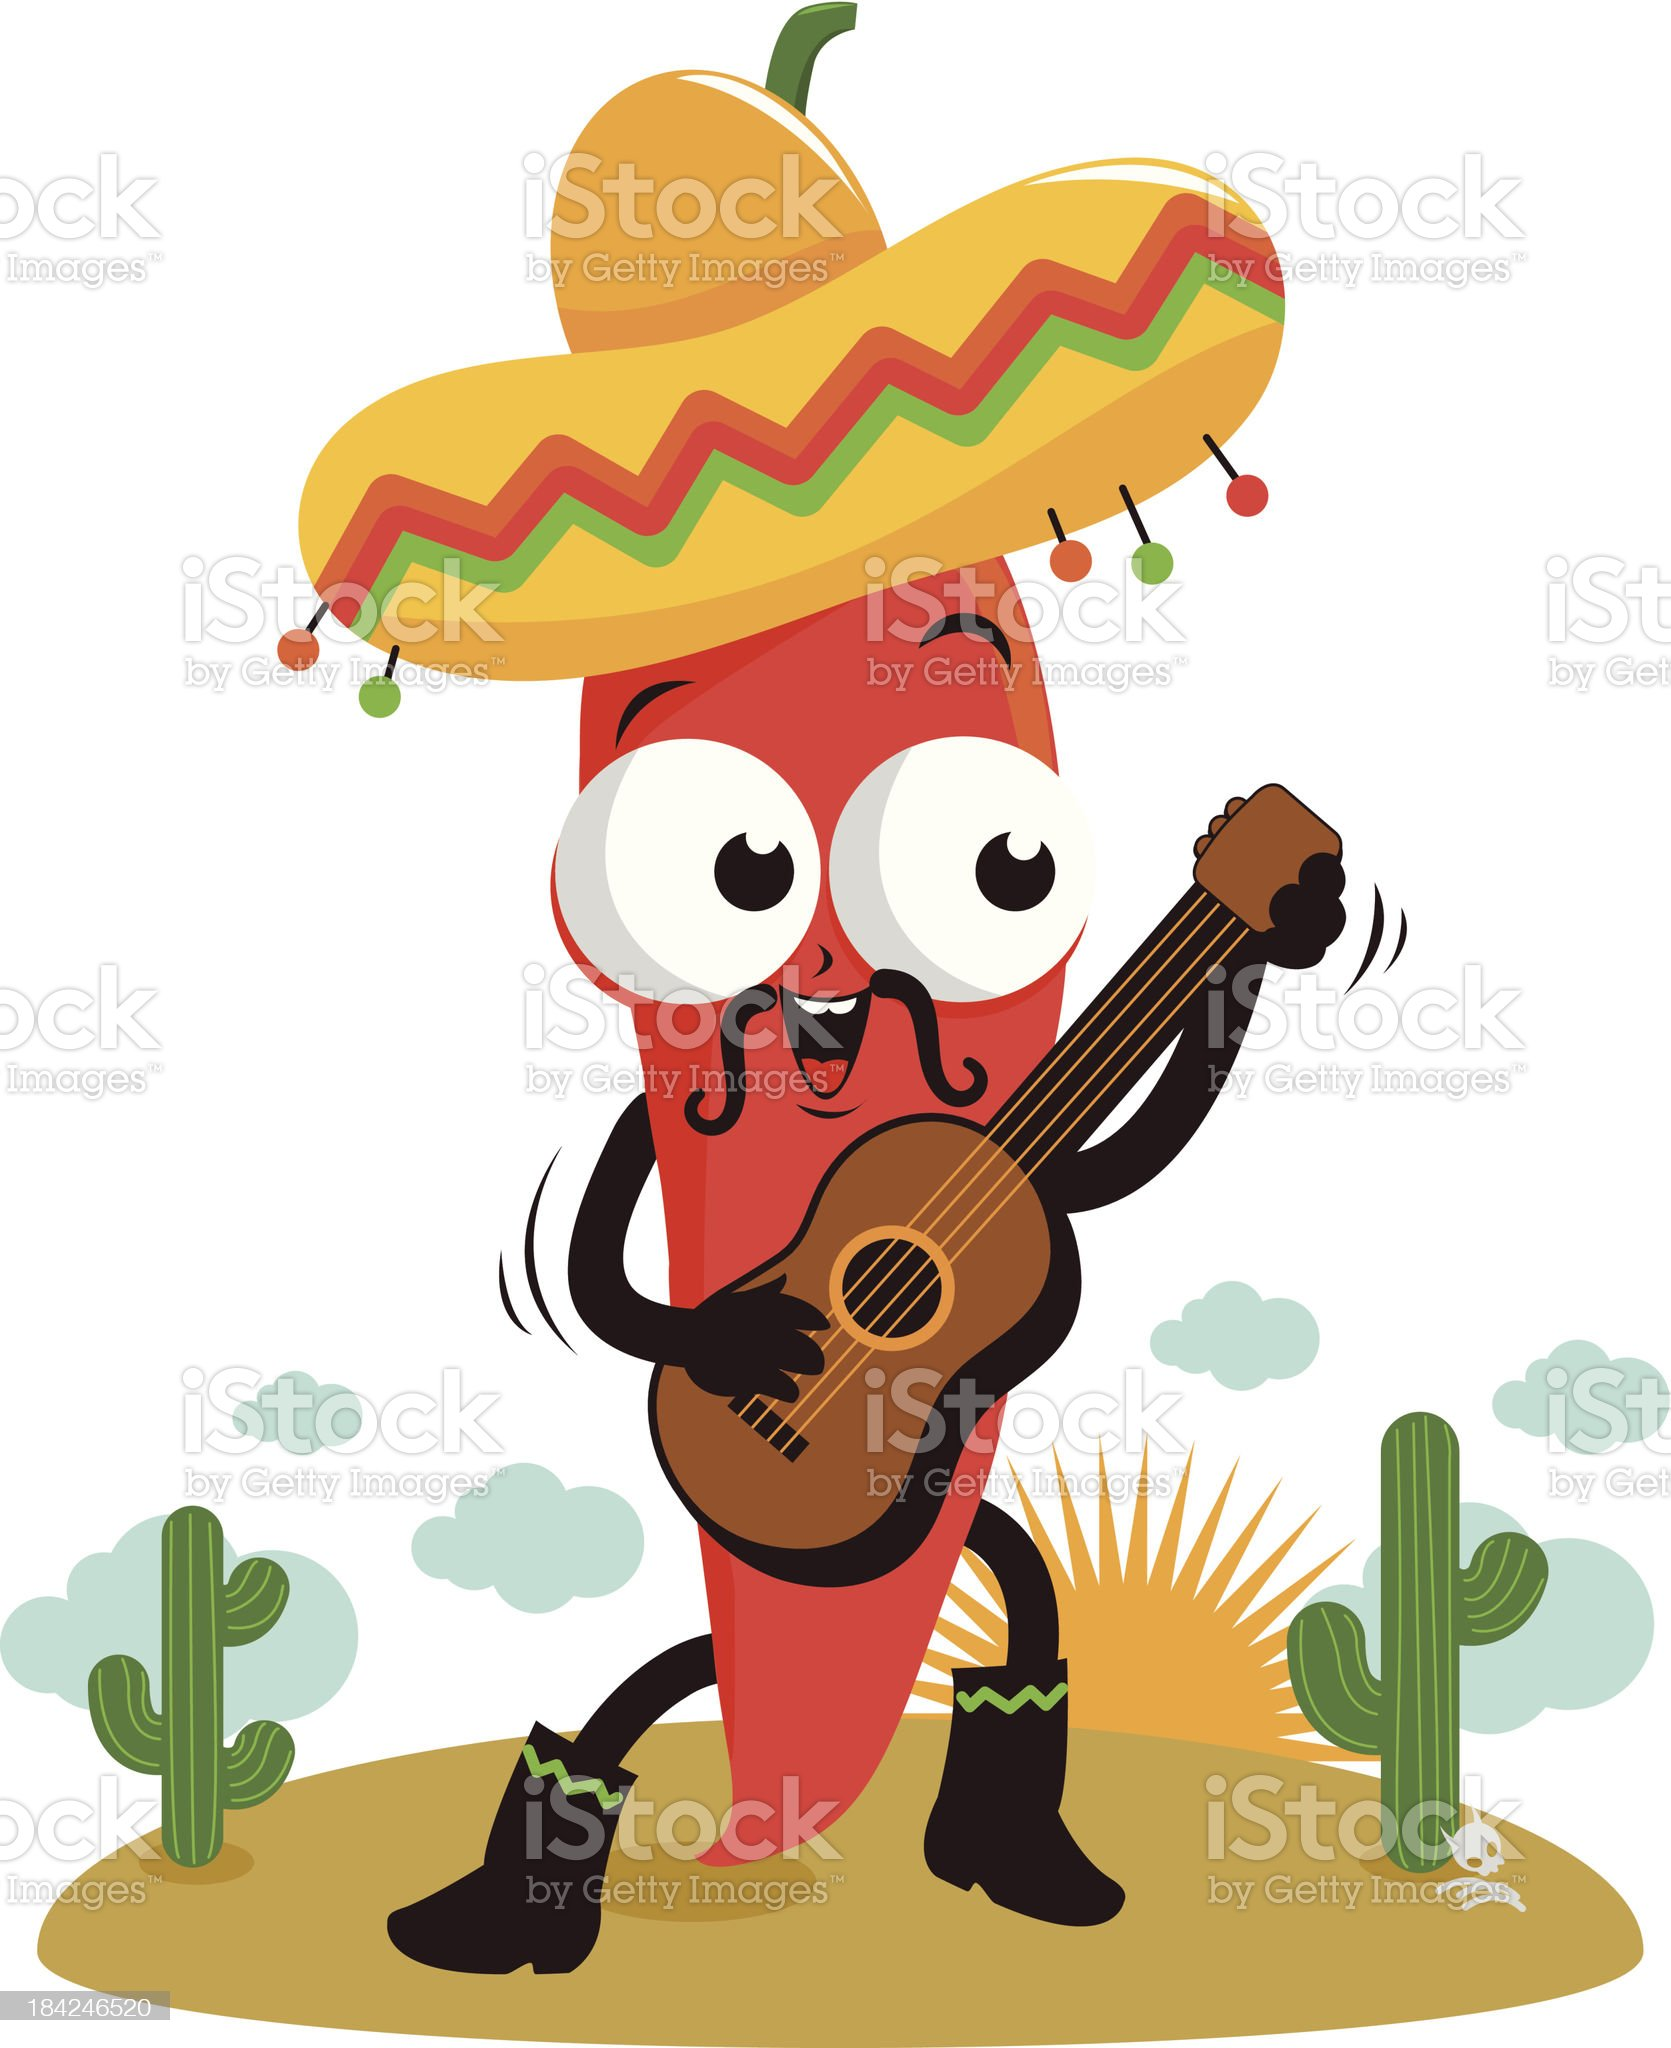 Mariachi chili pepper playing the guitar royalty-free stock vector art